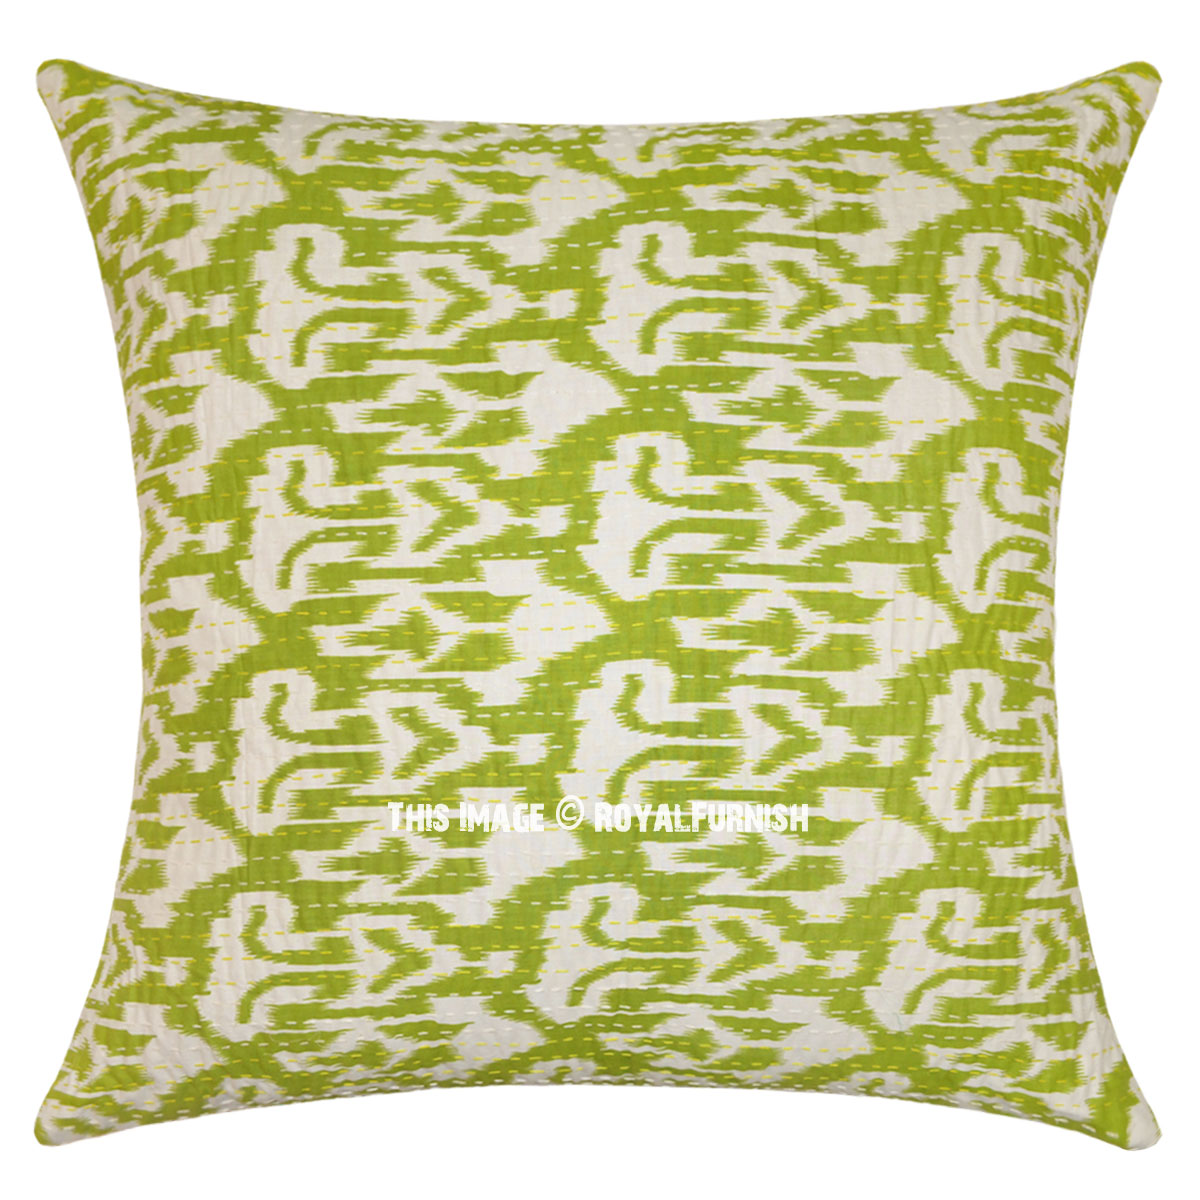 Green Accent Kantha Ikat Oversized Throw Pillow Cover